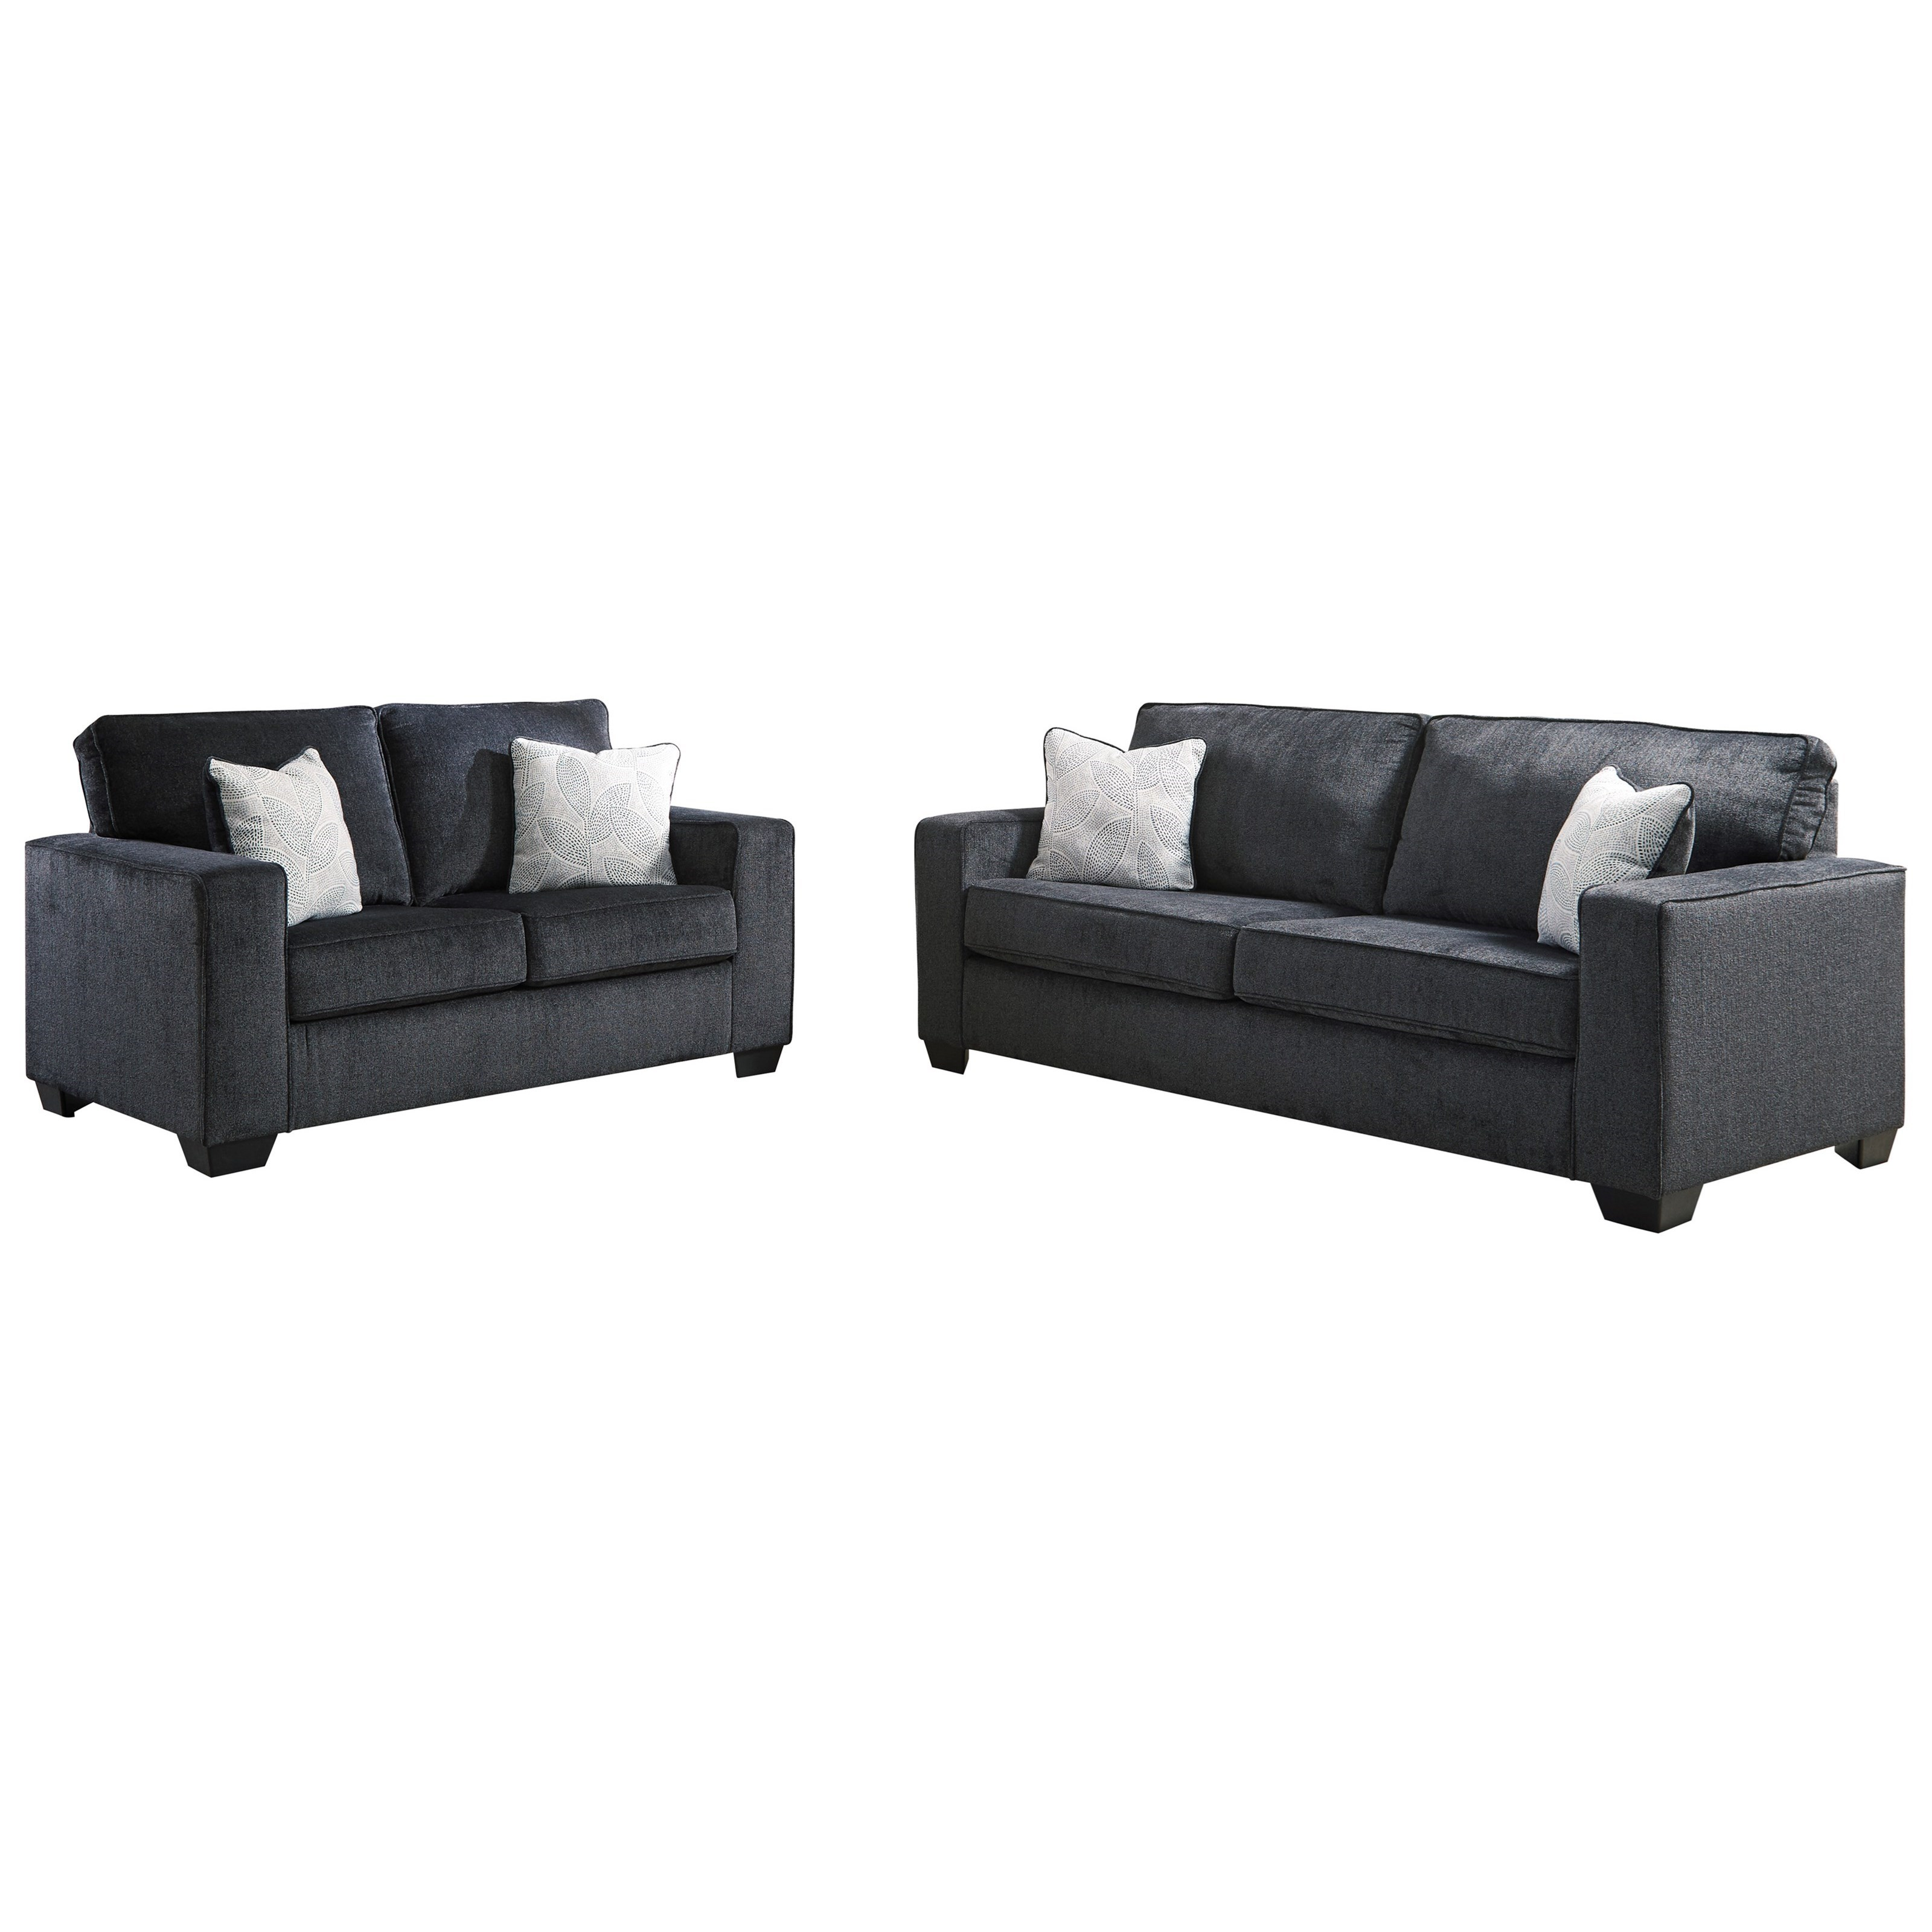 Altari Living Room Group by Signature Design by Ashley at Zak's Warehouse Clearance Center